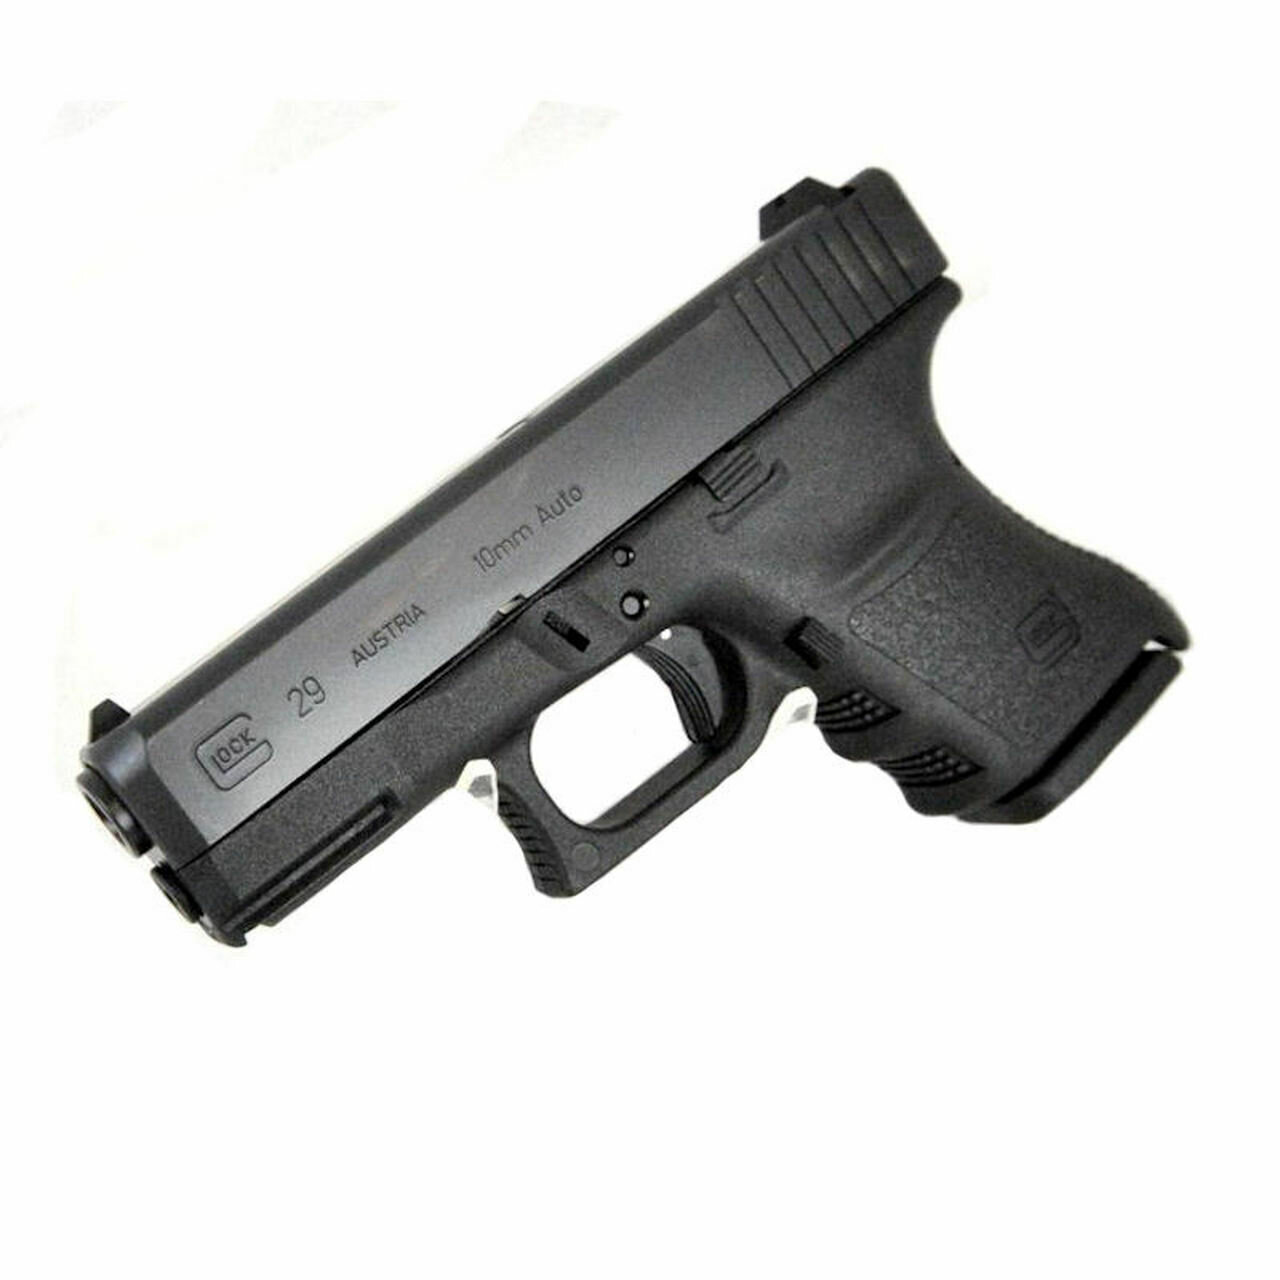 GLOCK 29 SF GEN 3 - LE ONLY 2 MAGS